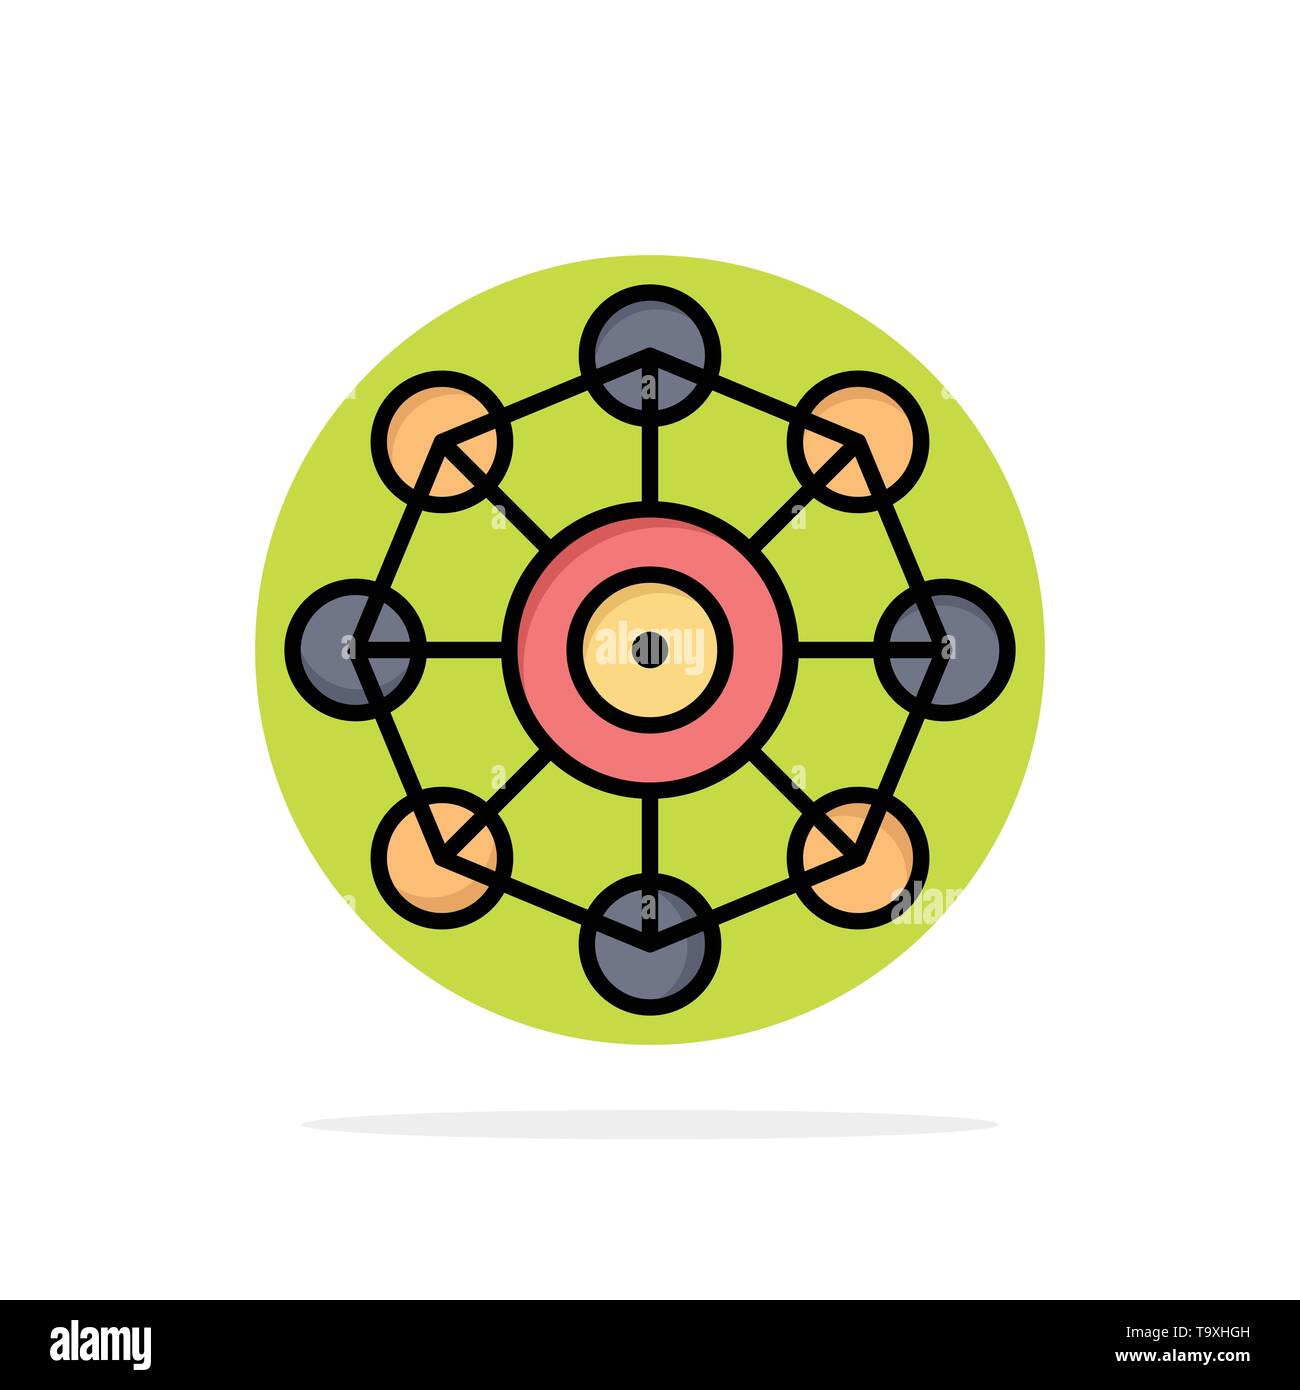 Learning, Machine, Machine Learning, Science Abstract Circle Background Flat color Icon - Stock Image